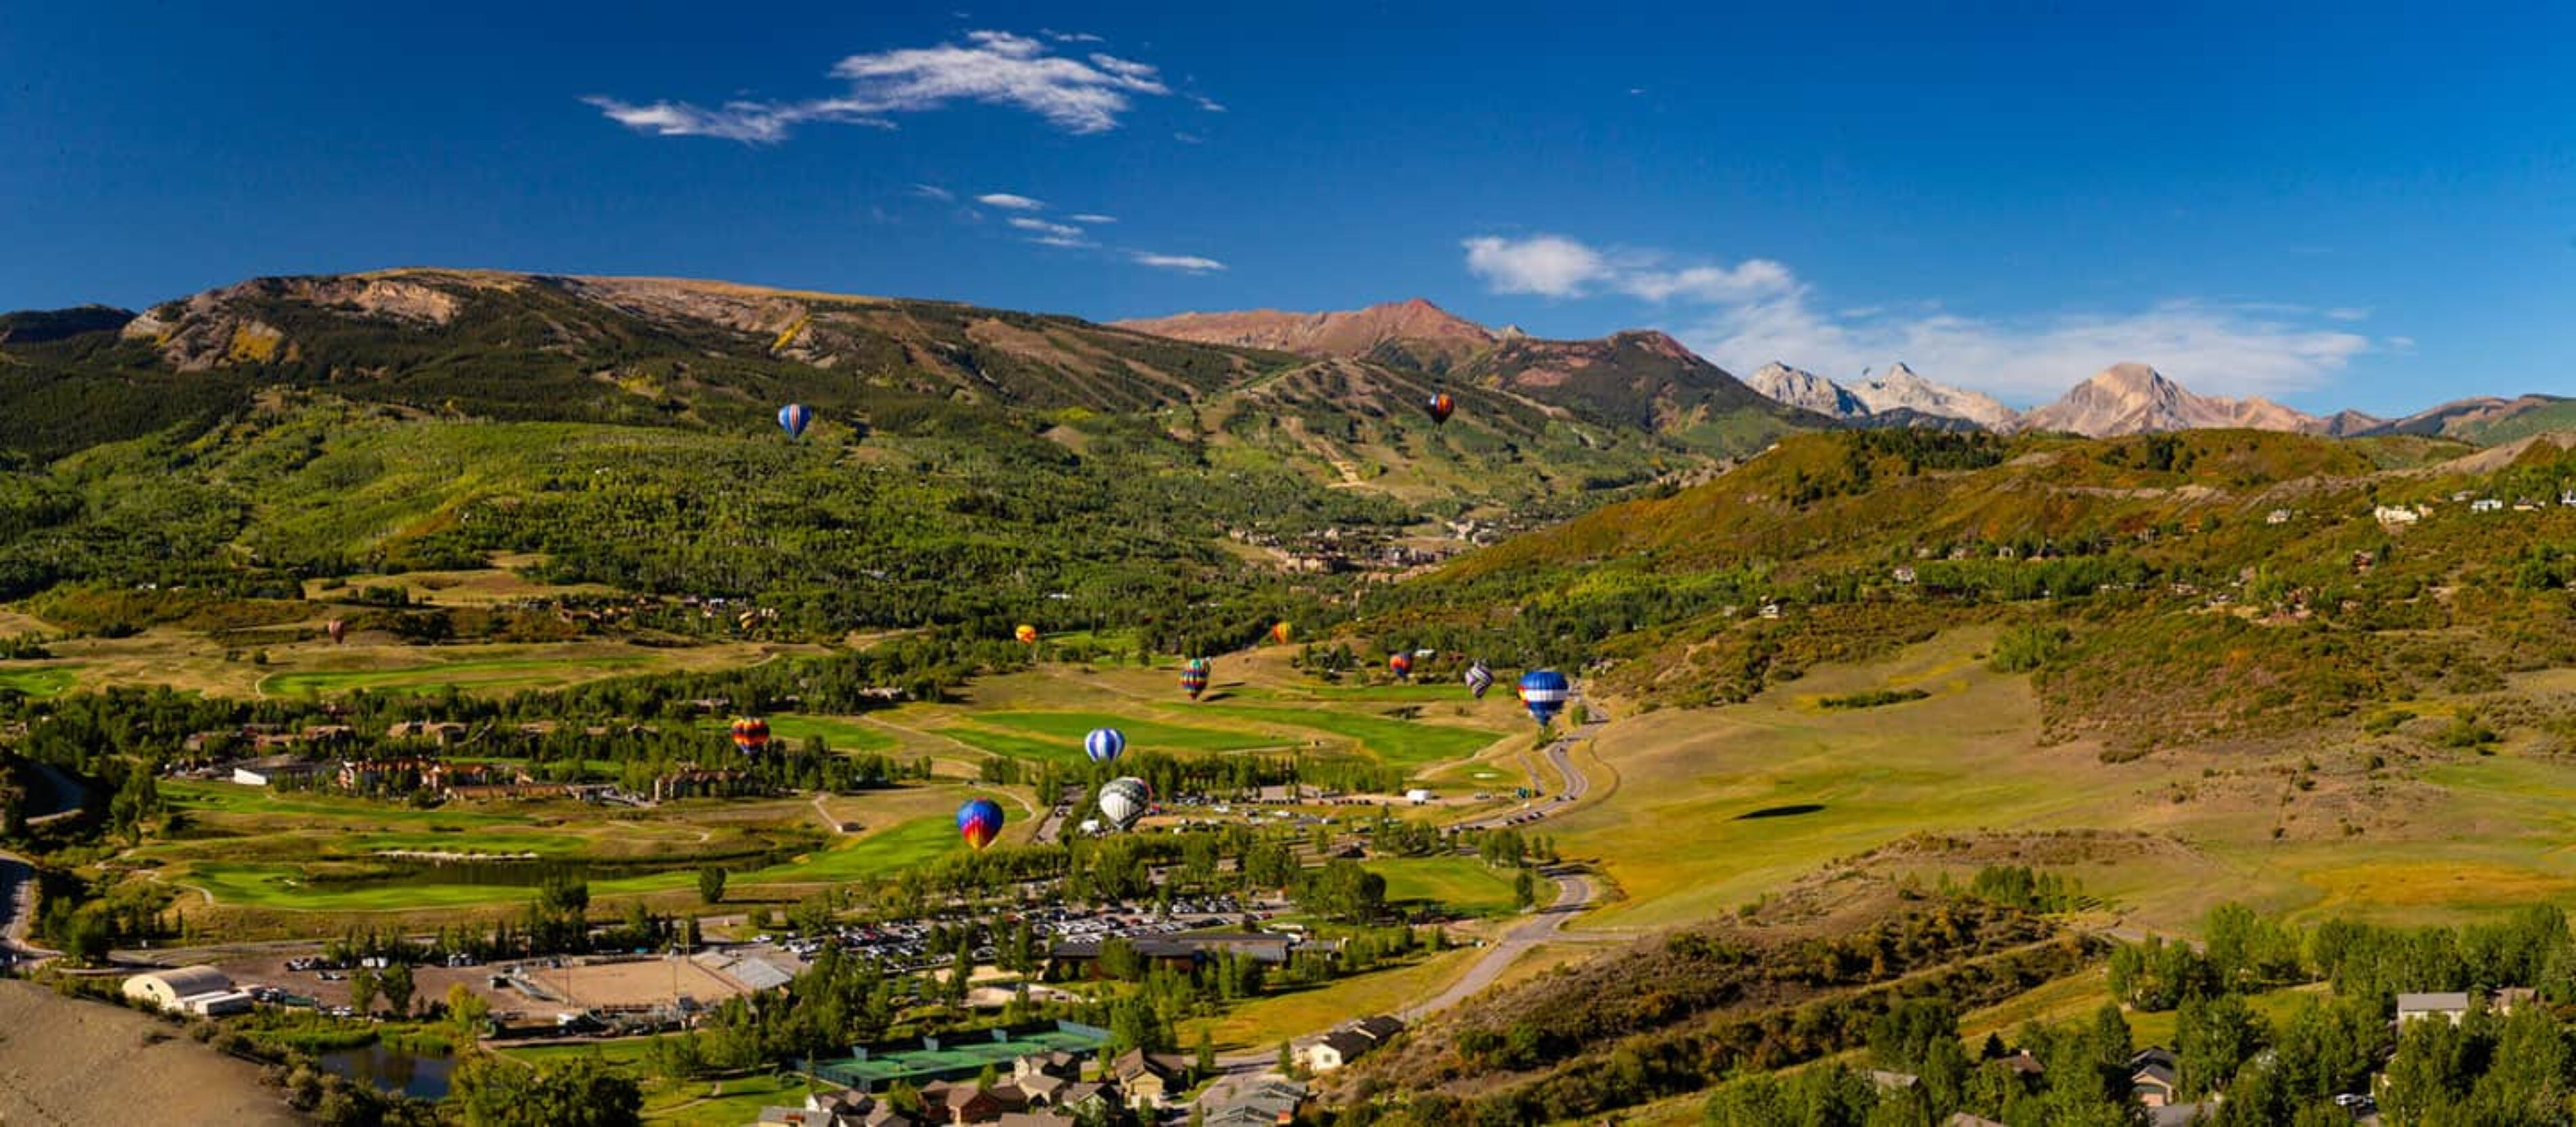 Balloons in Snowmass